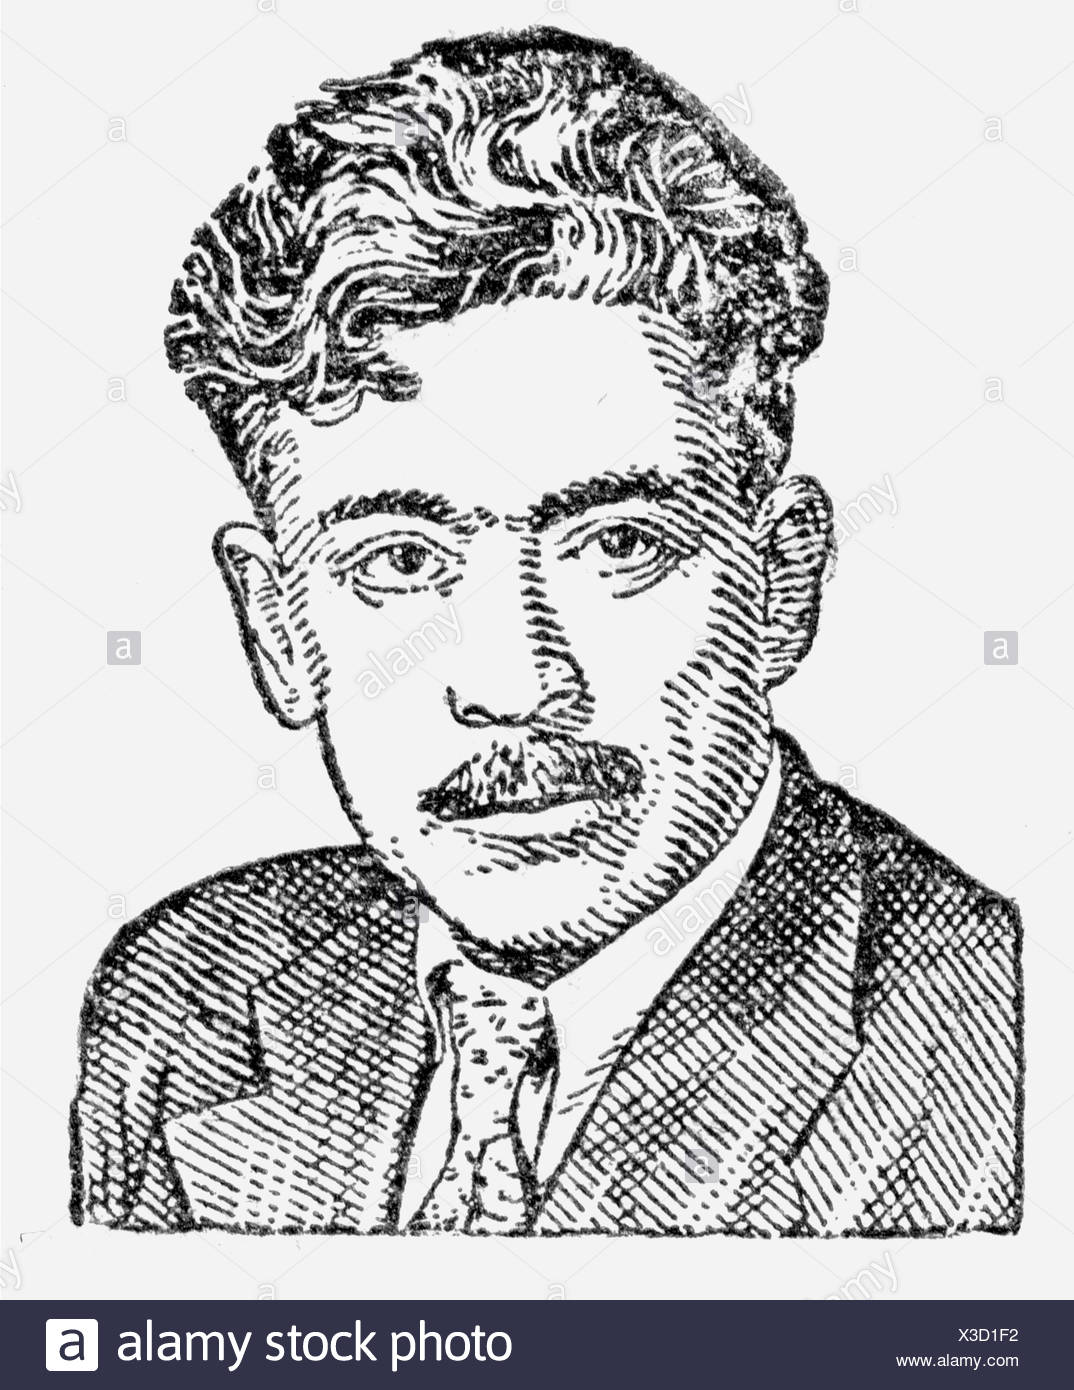 Wurgun, Samed, 1906 - 1956, Azerbaijani author / writer, portrait, anonymous drawing from a Soviet encyclopaedia, 20th century, Additional-Rights-Clearances-NA - Stock Image